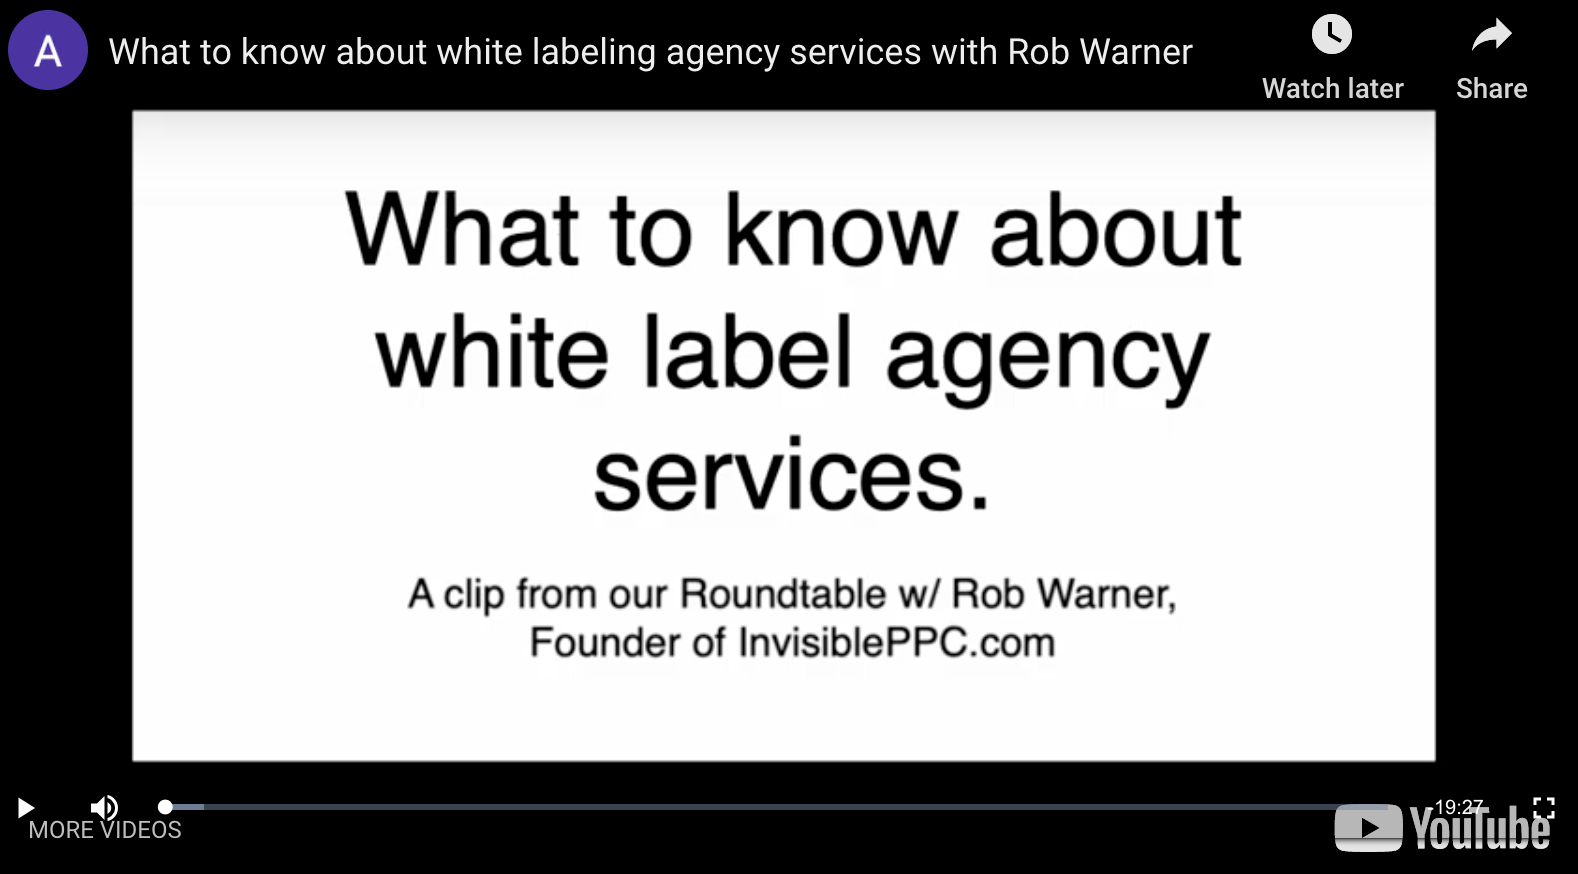 What to Know About White Labeling Services